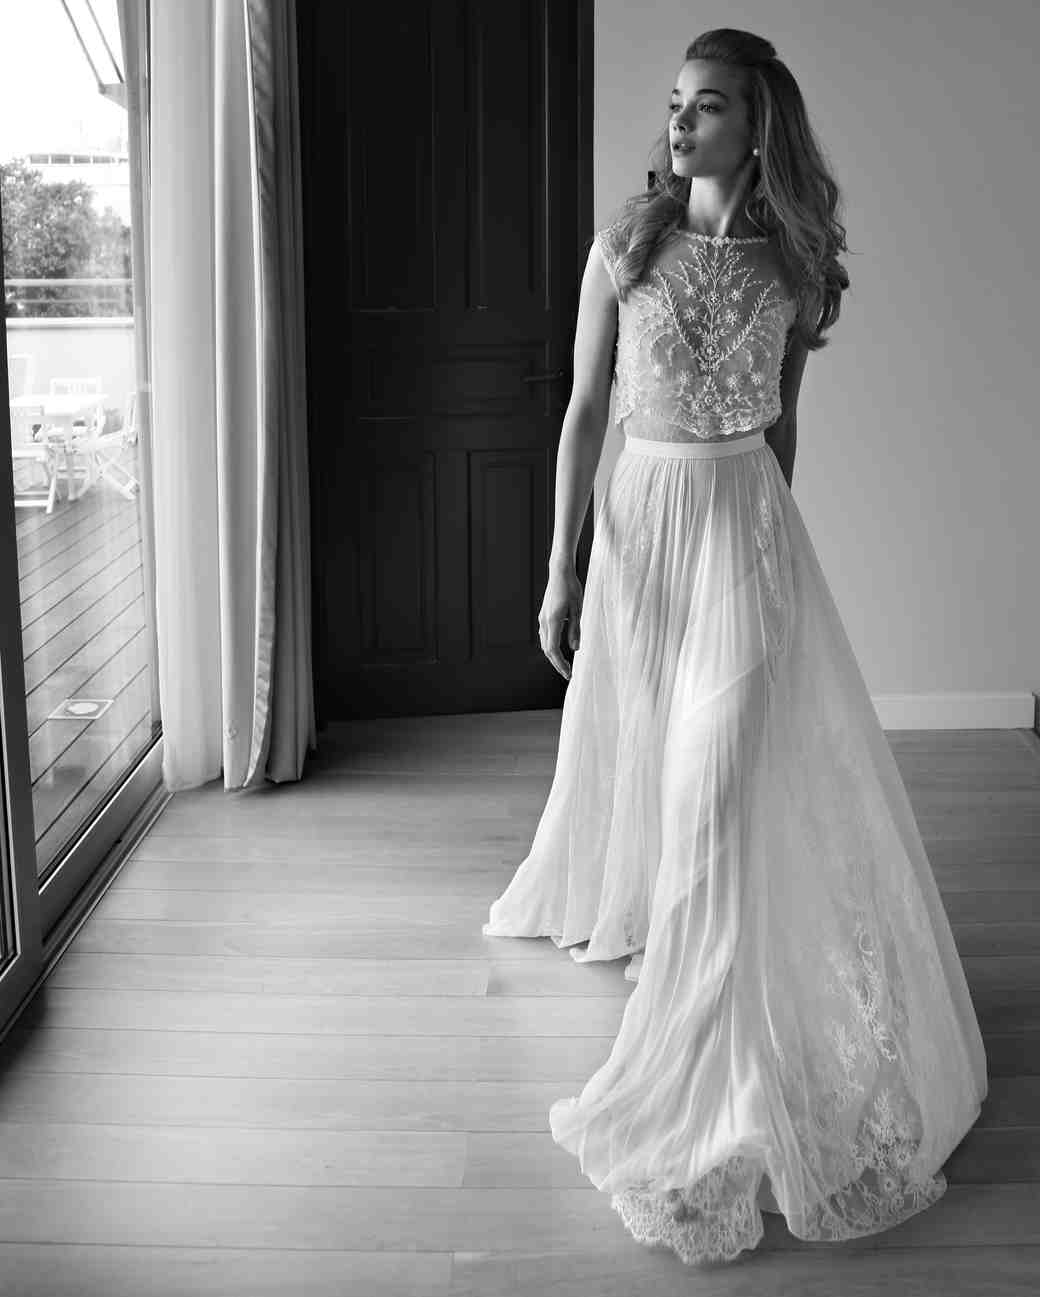 50 wedding dresses for every bride s state pride martha for Wedding dresses minneapolis mn